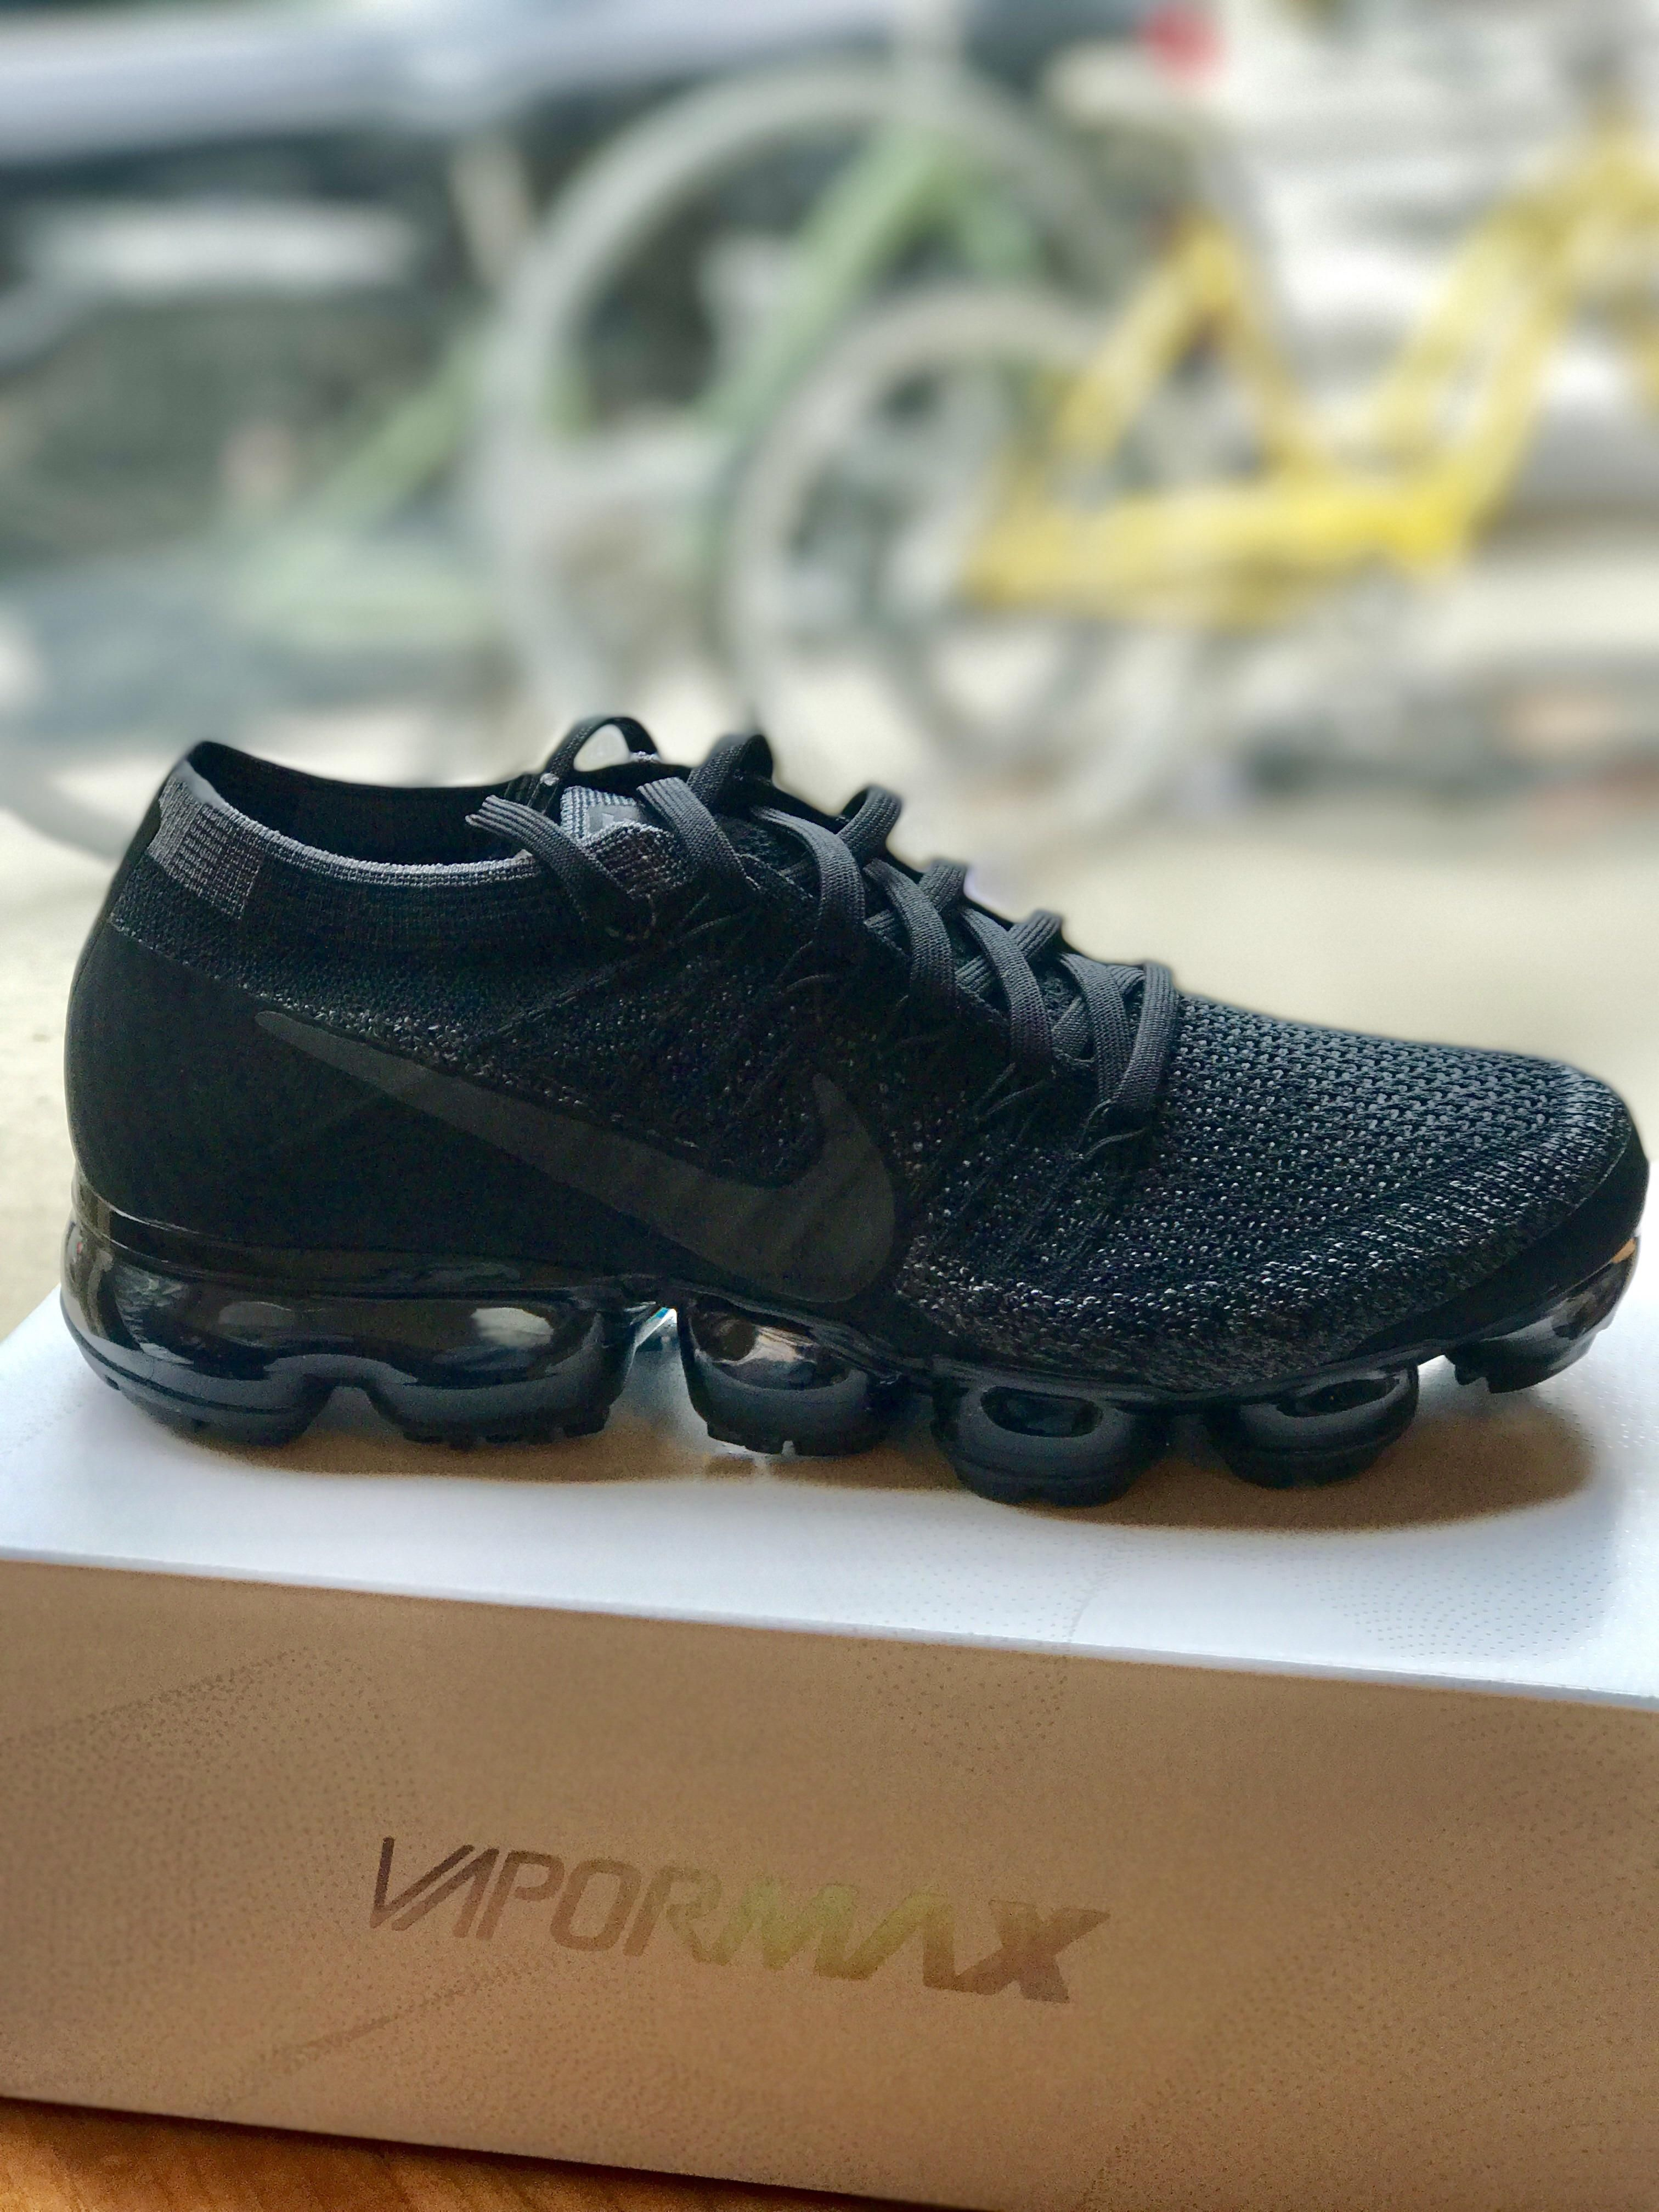 fca3001d9bec  LPU  Nikelab Vapormax - Triple Black- was not expecting this to be such a  hard cop